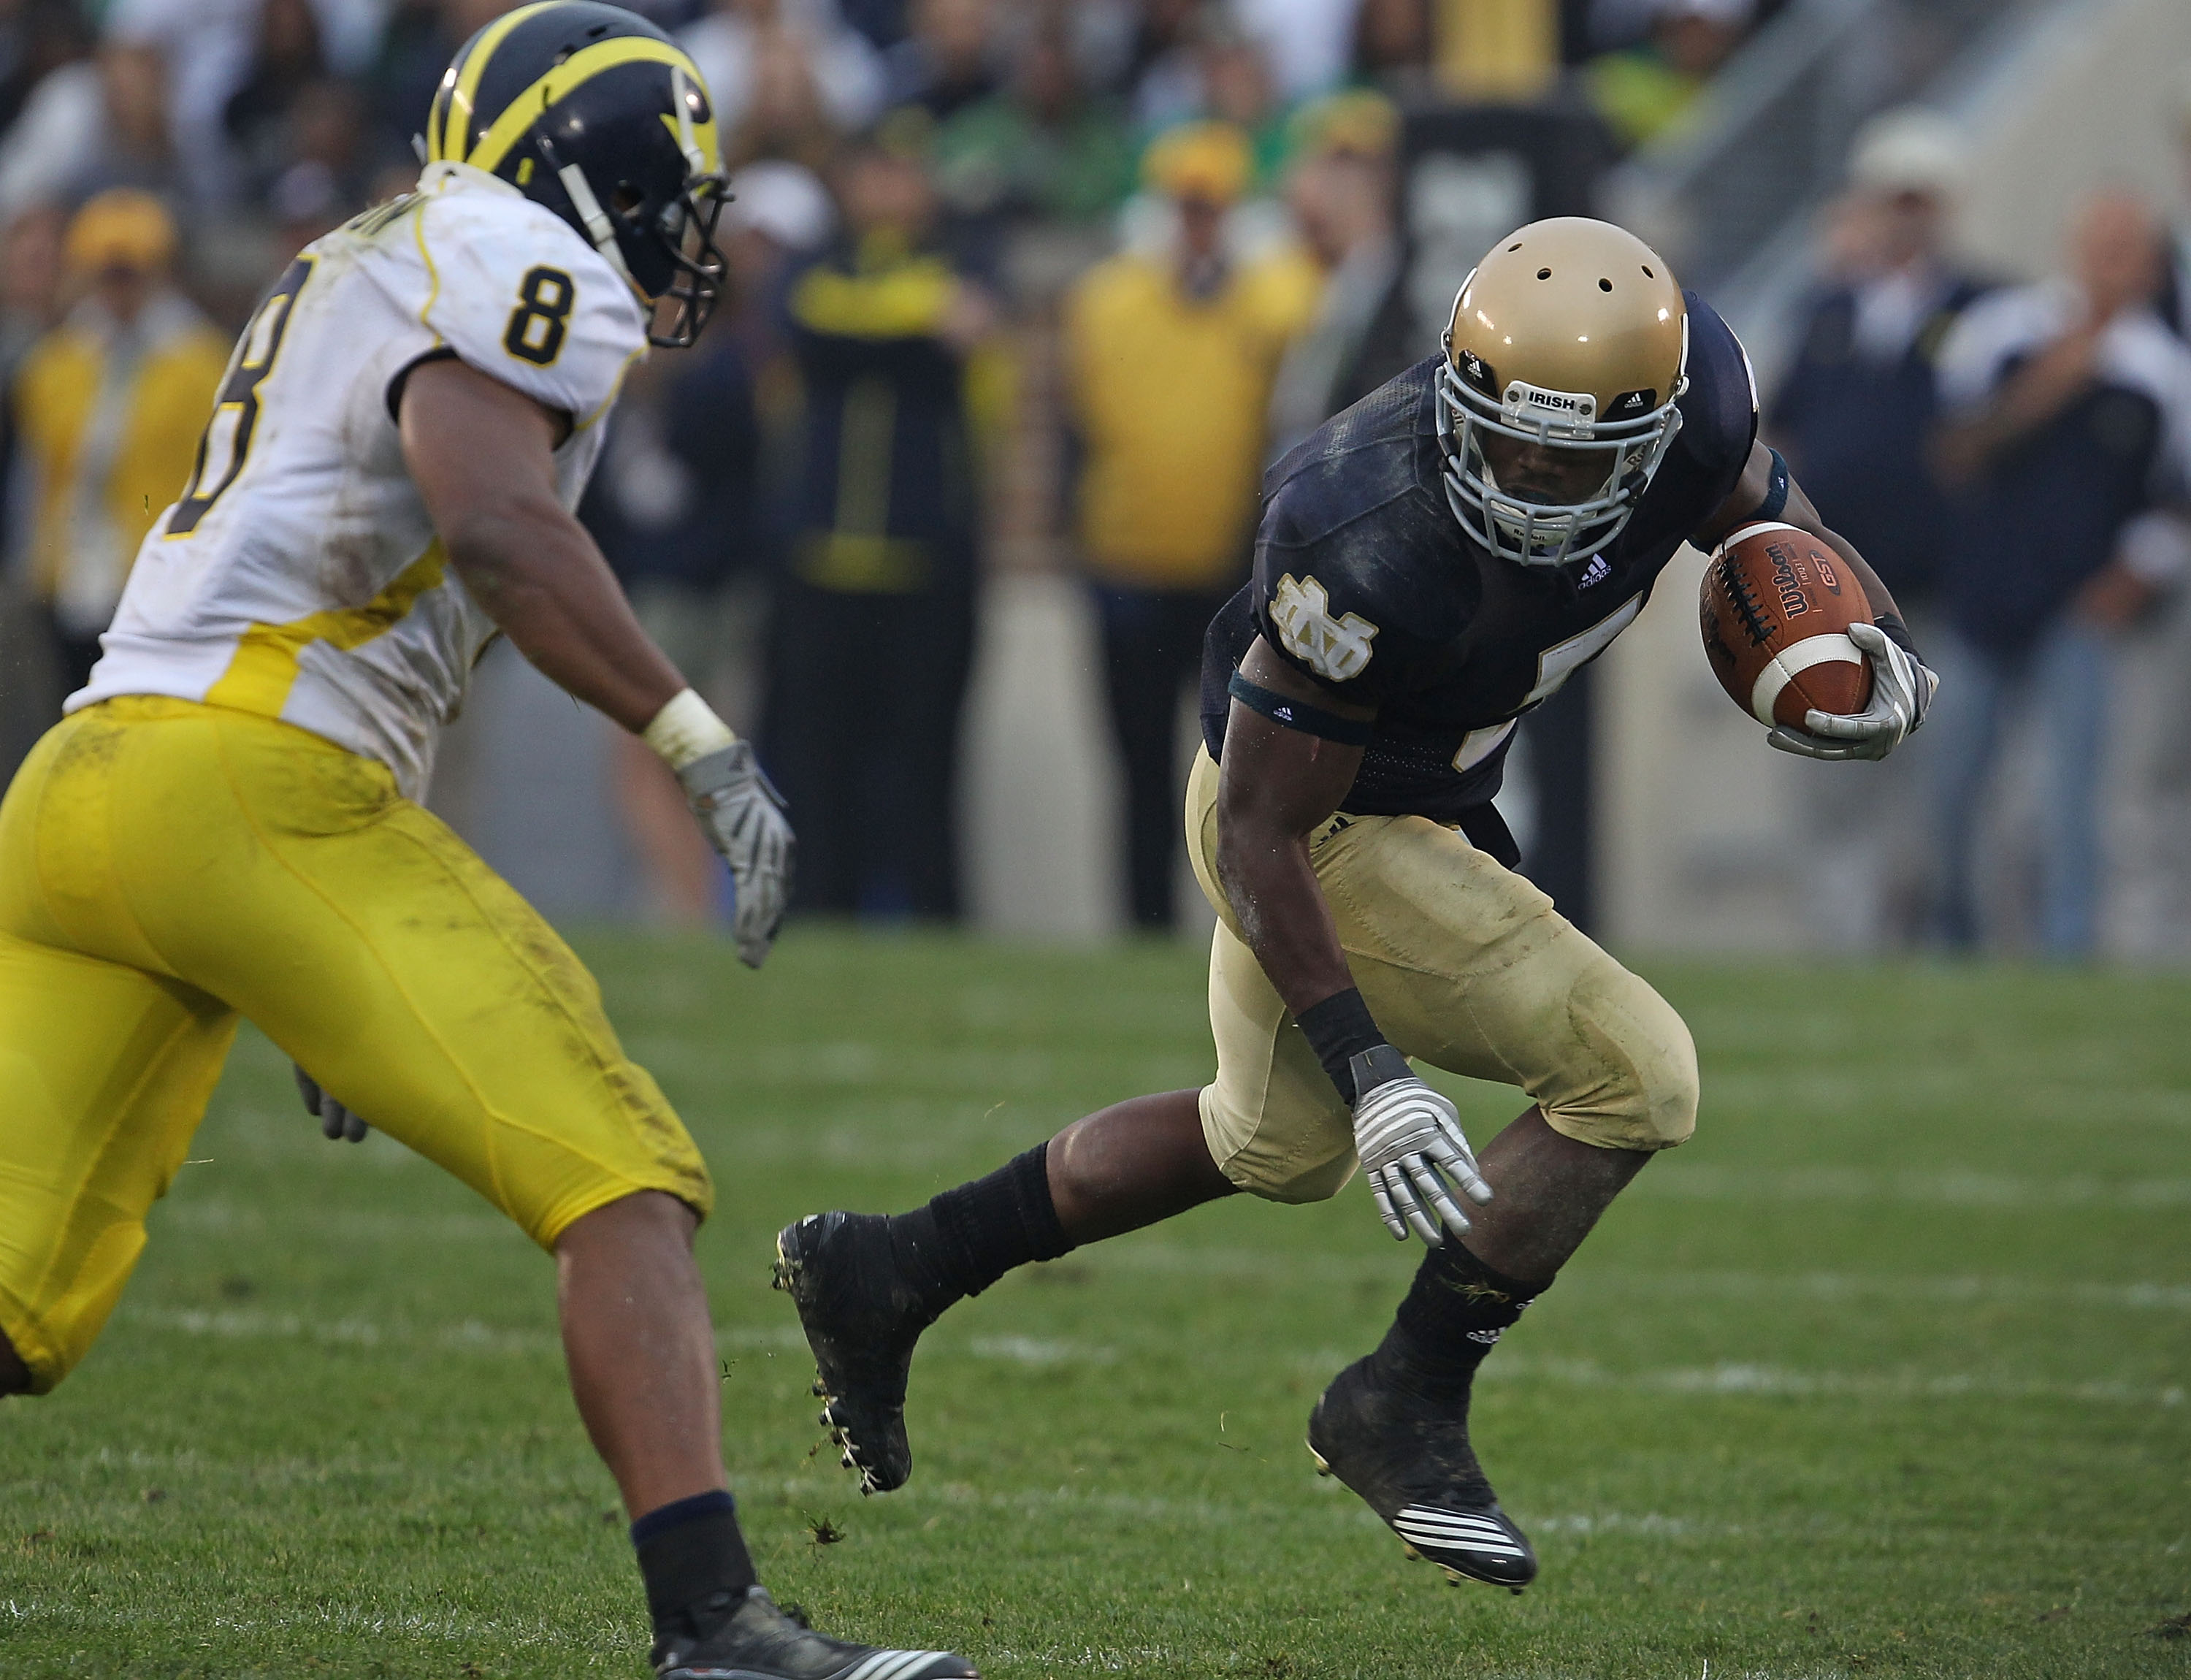 Notre Dame vs Michigan one of college football greatest rivalries